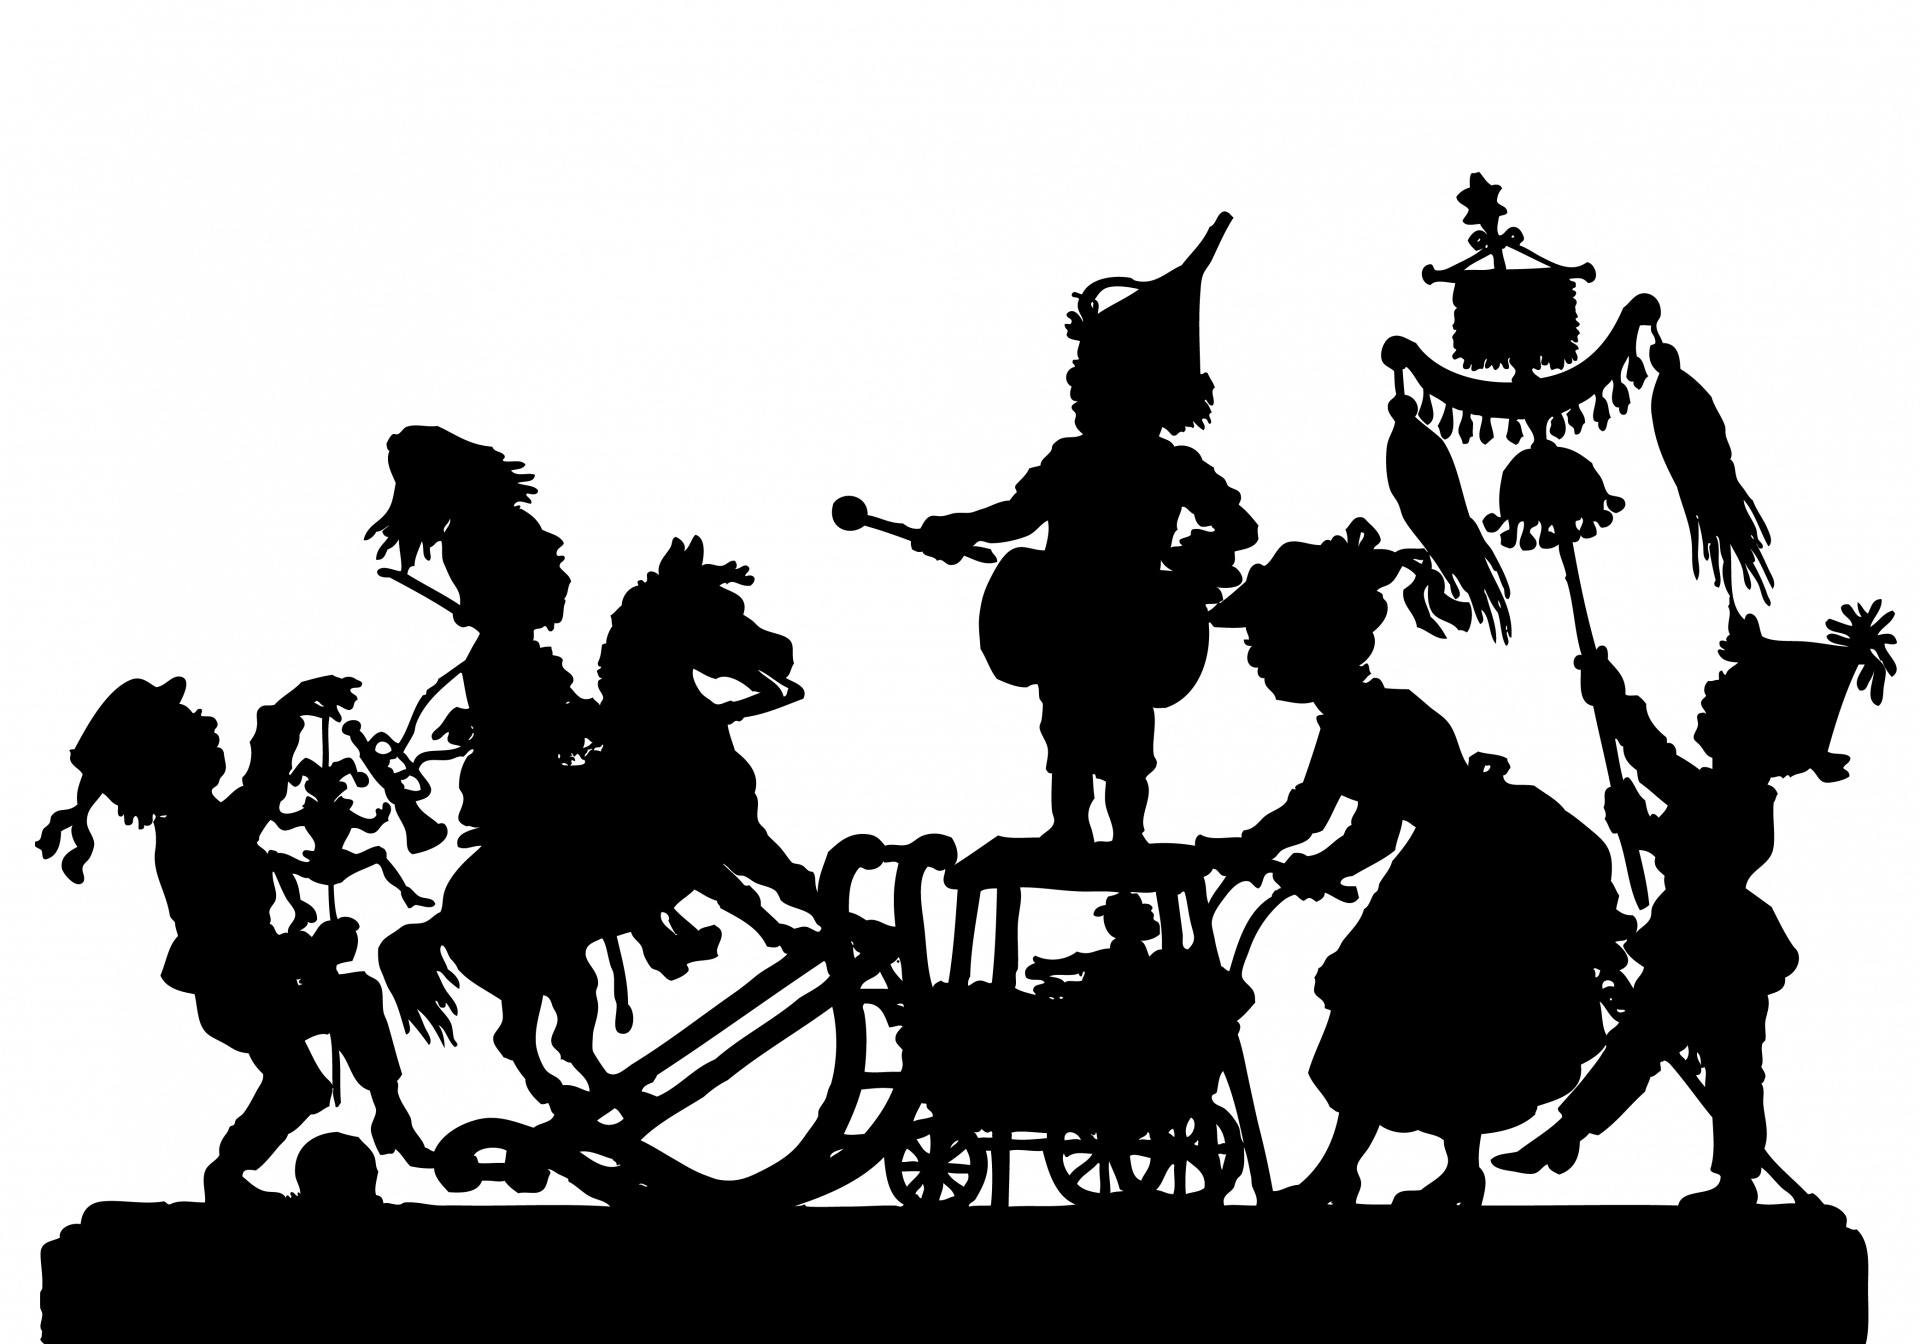 Victorian children playing silhouette clipart free banner transparent Parade,silhouette,victorian,people,children - free photo ... banner transparent